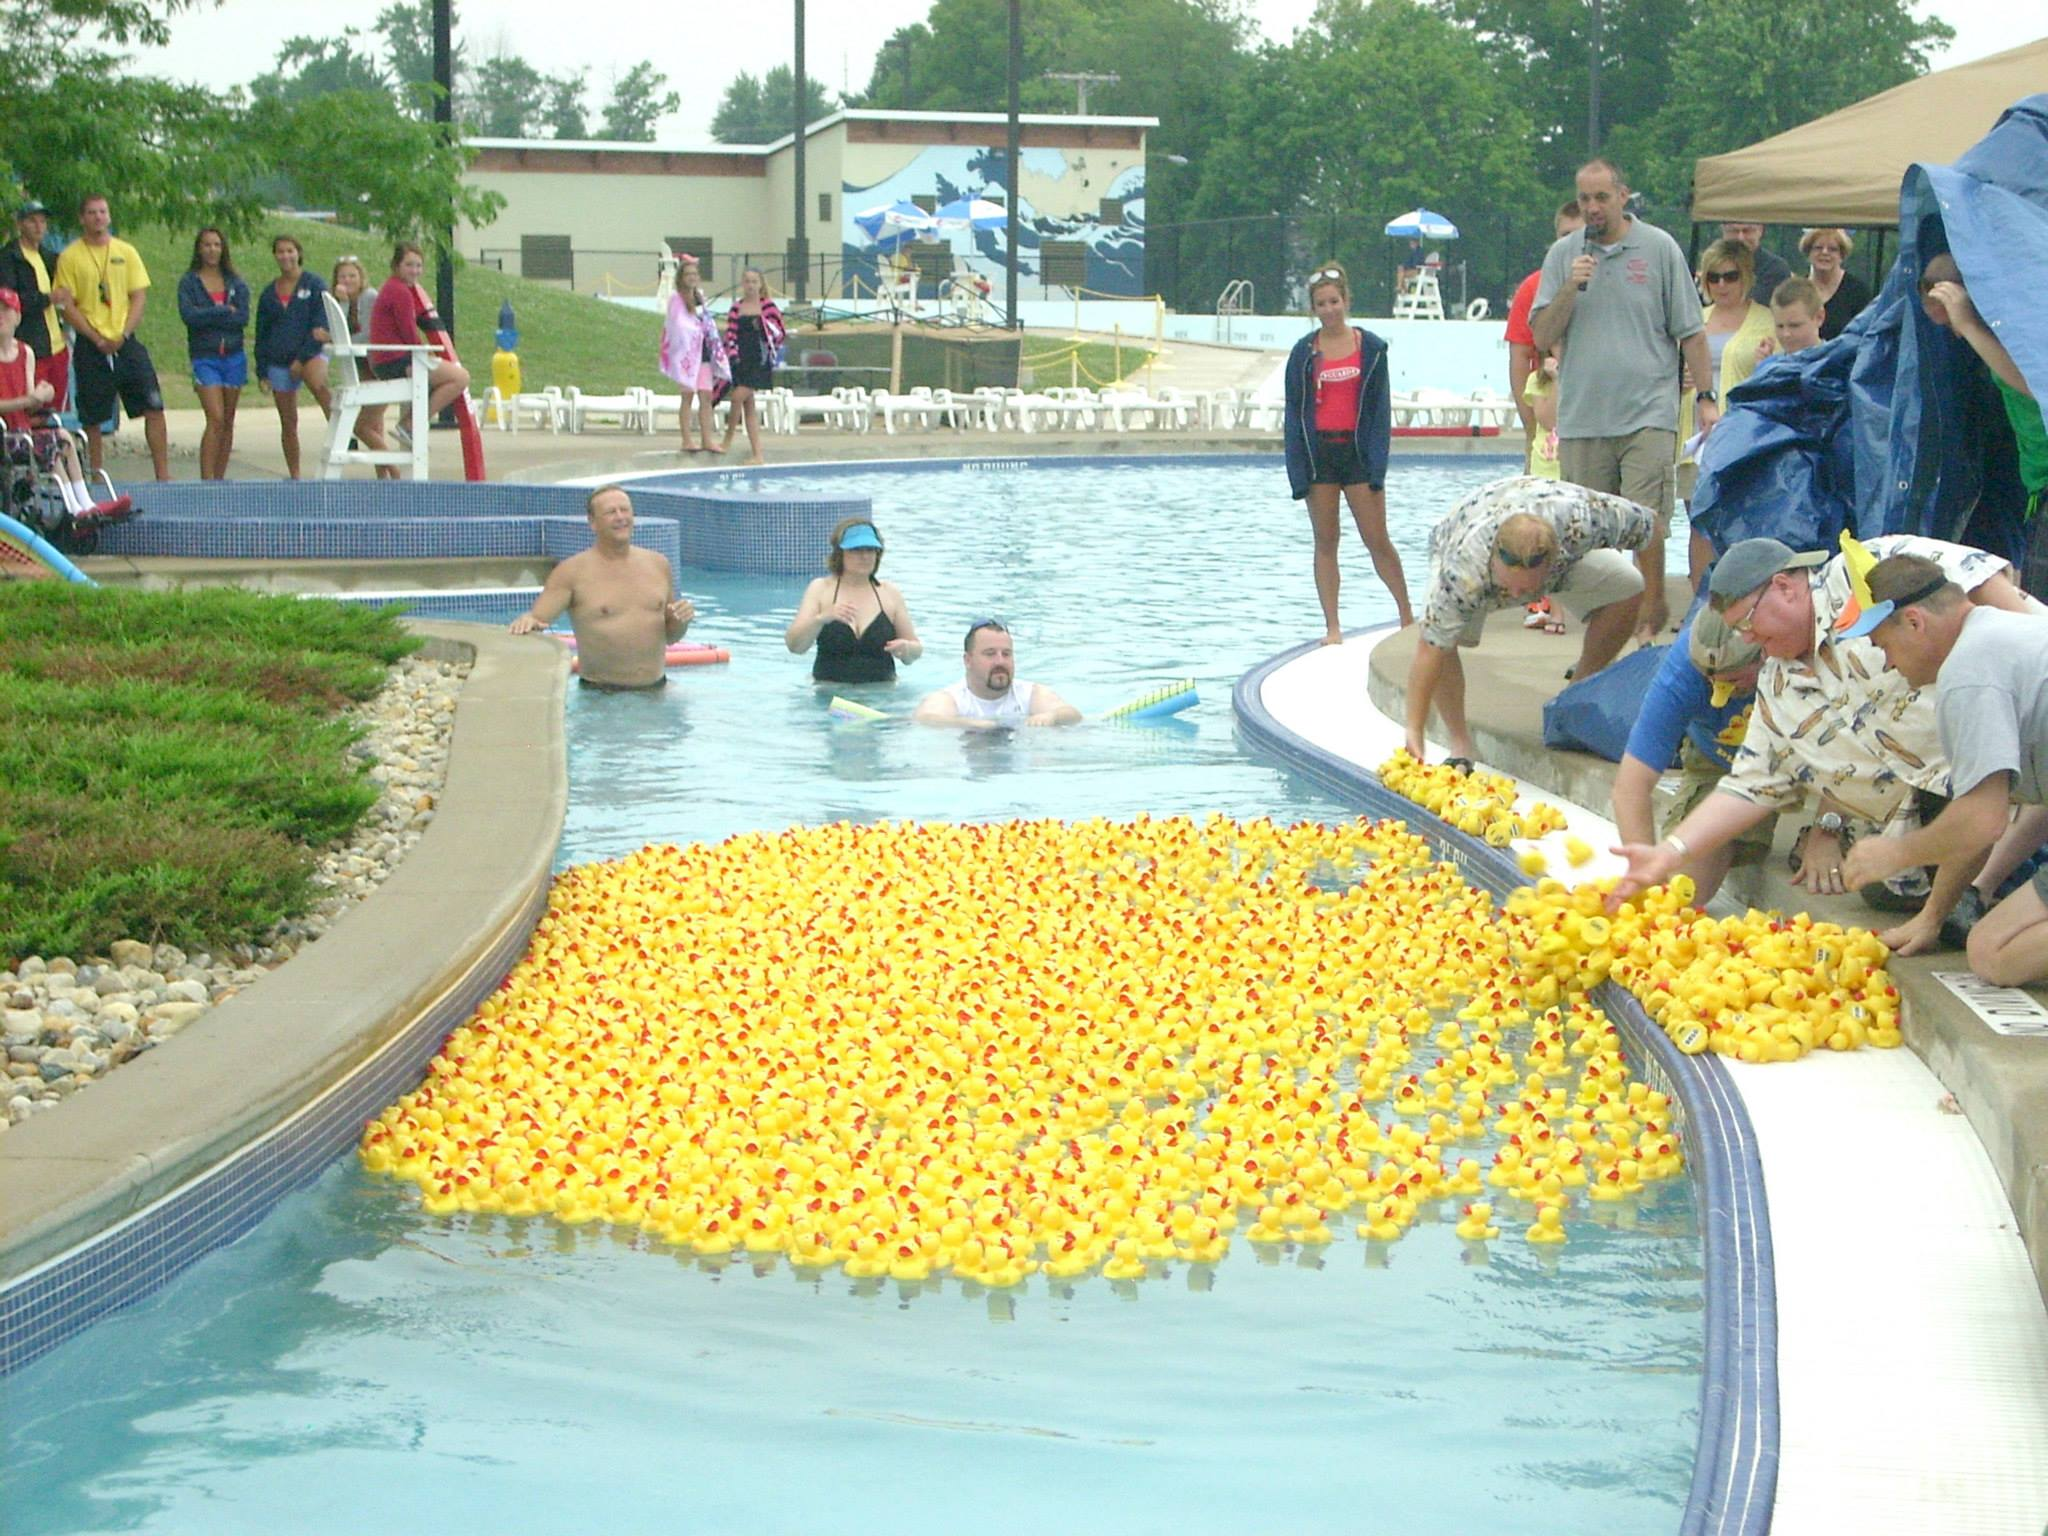 The Eighth Annual Carey Services Duck Race Created Quite A Splash, Raising  The Most Money Ever And Also Being The First Year It Sold Out 2,500 Tickets.